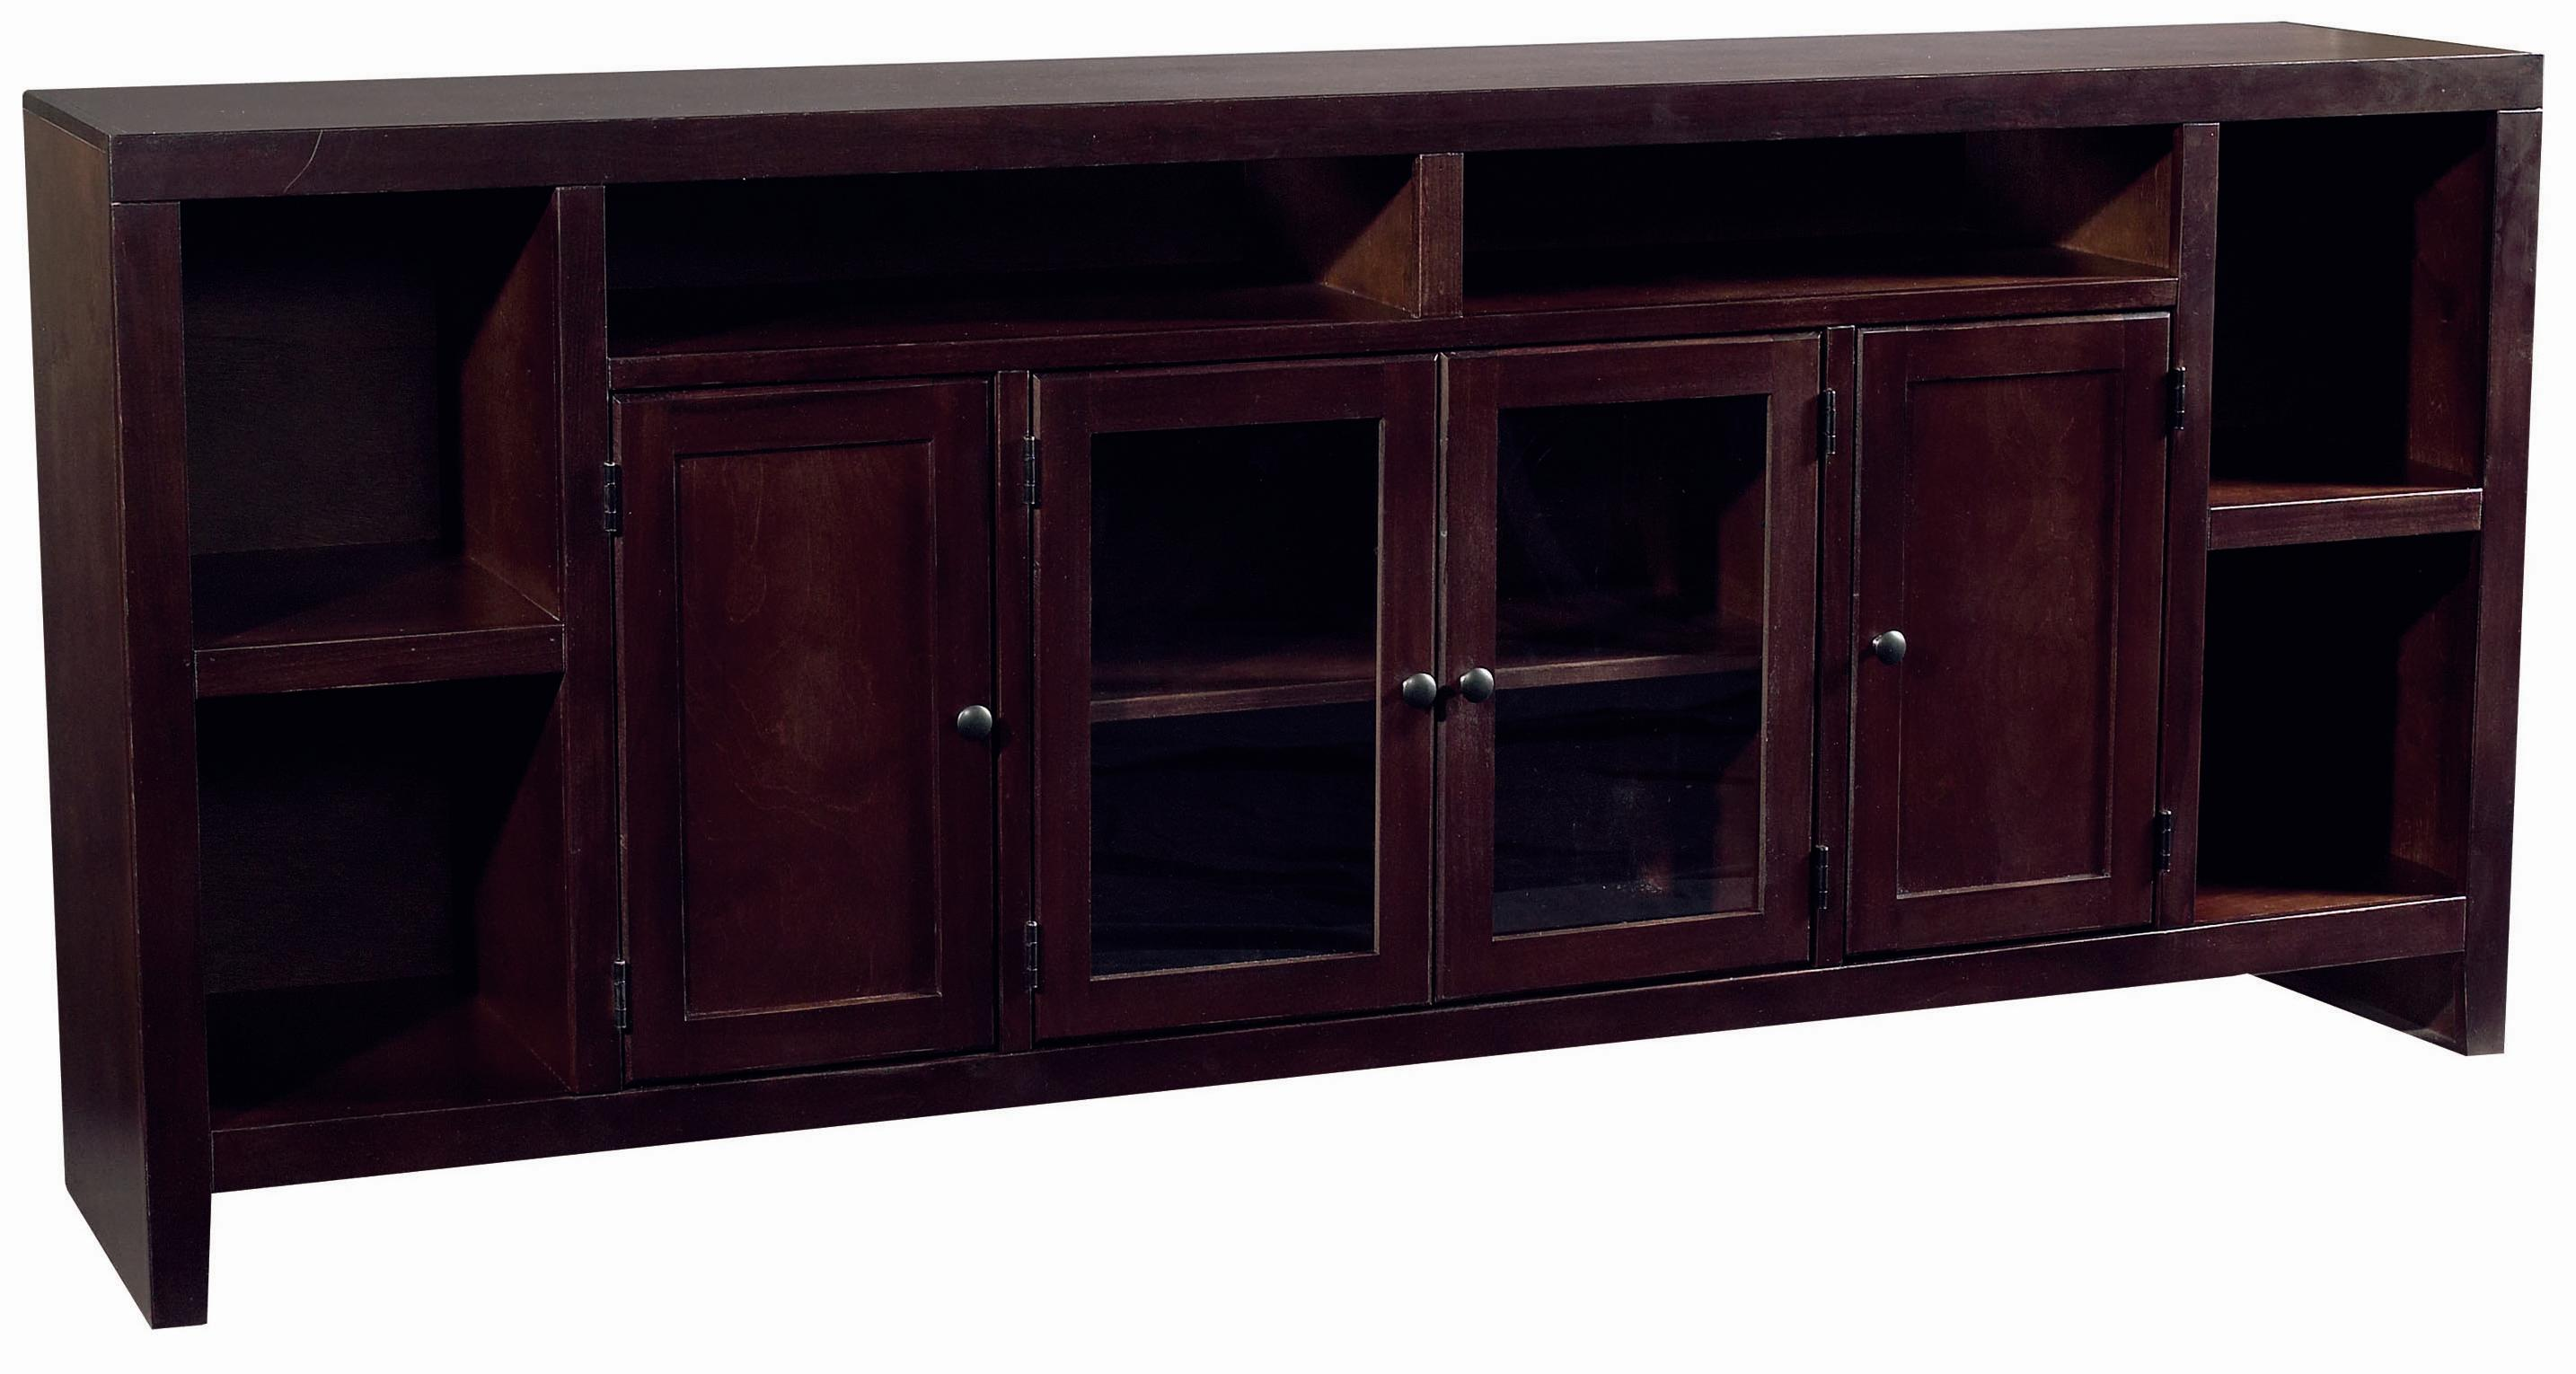 Aspenhome Essentials Lifestyle 84 Inch Console - Item Number: CL1036-CHY